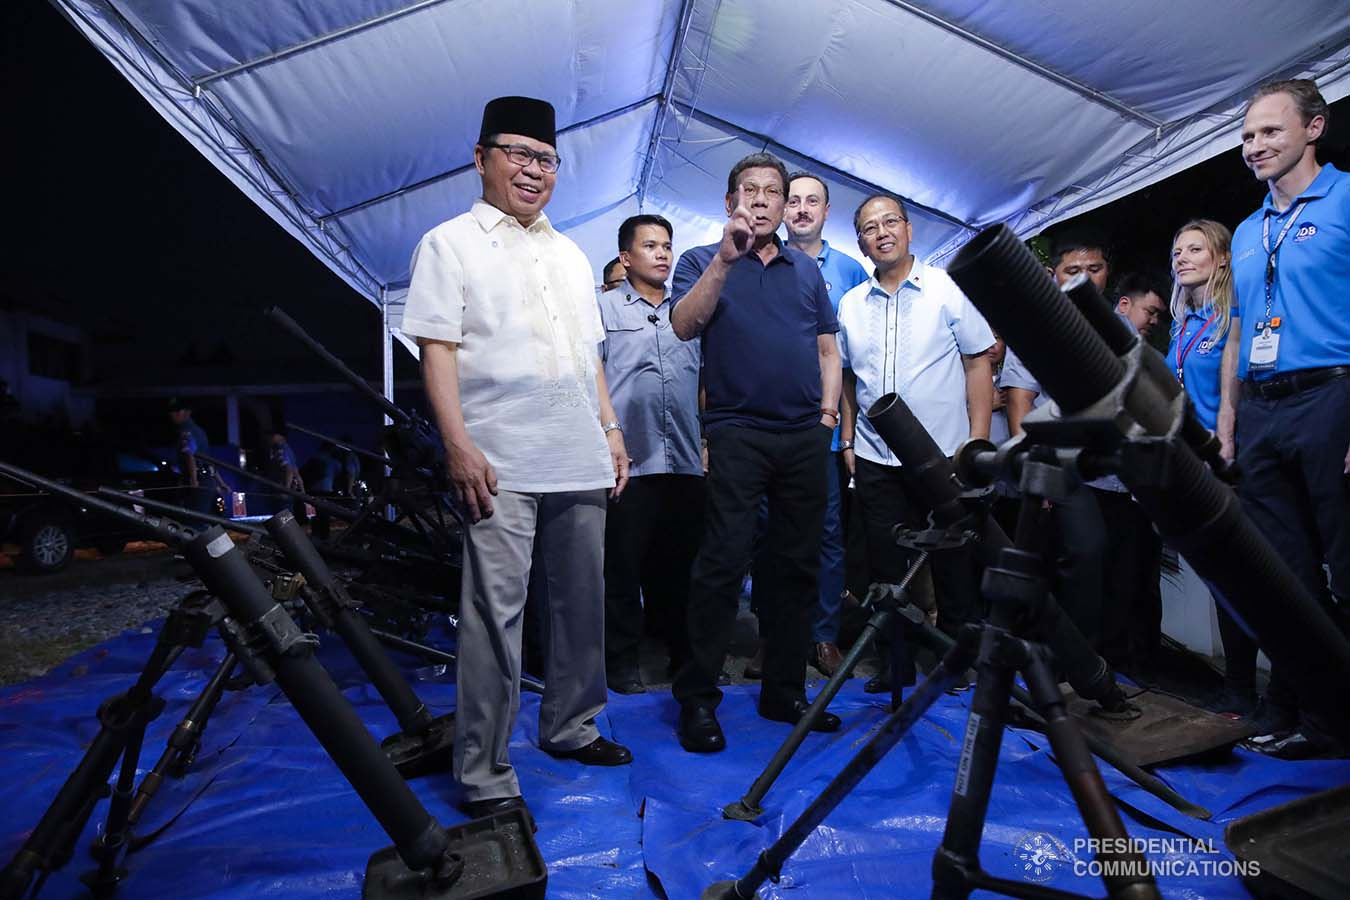 President Rodrigo Roa Duterte inspects the decommissioned firearms from the former combatants of the Moro Islamic Liberation Front during their decommissioning at the Old Provincial Capitol Compound in Sultan Kudarat, Maguindanao on September 7, 2019. ROBINSON NIÑAL JR./PRESIDENTIAL PHOTO